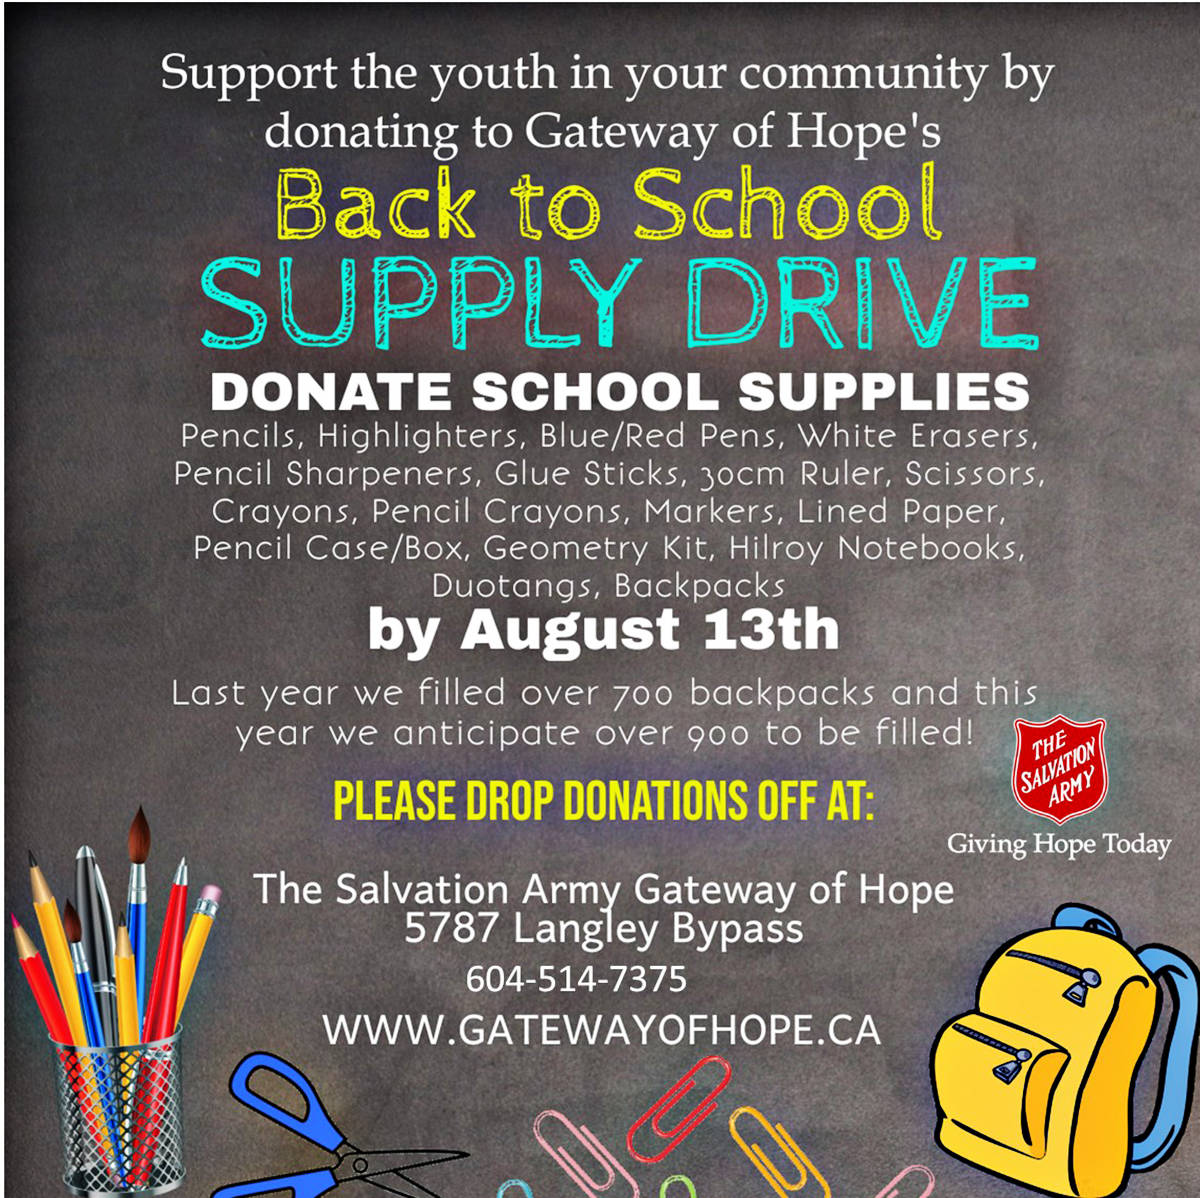 Families have until Aug. 20, 2021, to register if they need school supplies for their children. (Gateway of Hope poster)